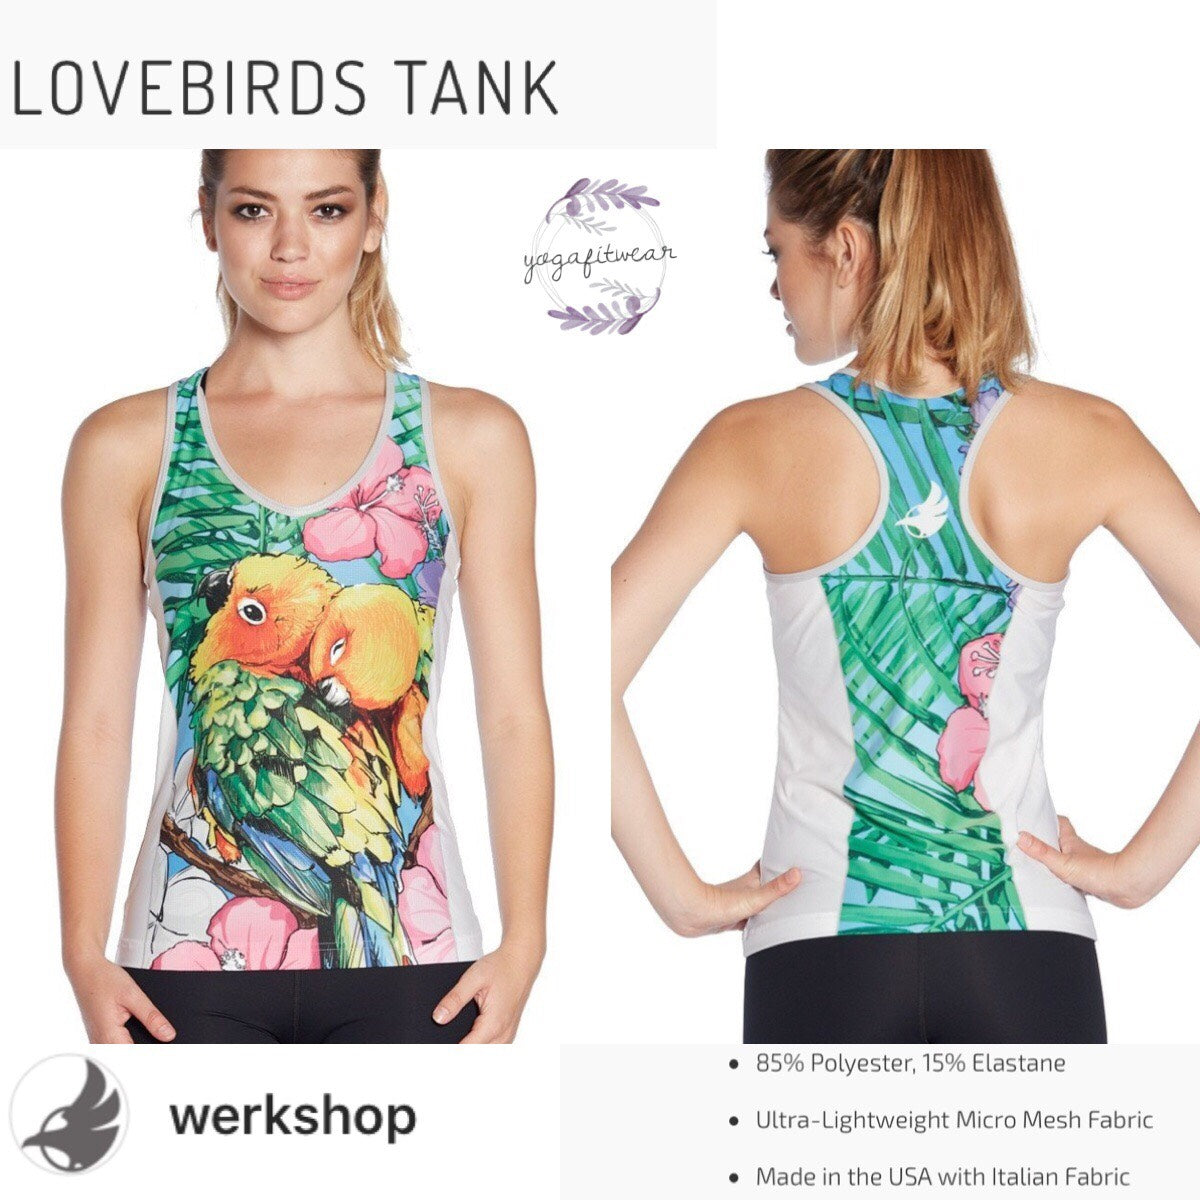 Werkshop - Lovebirds Tank (WS00170)